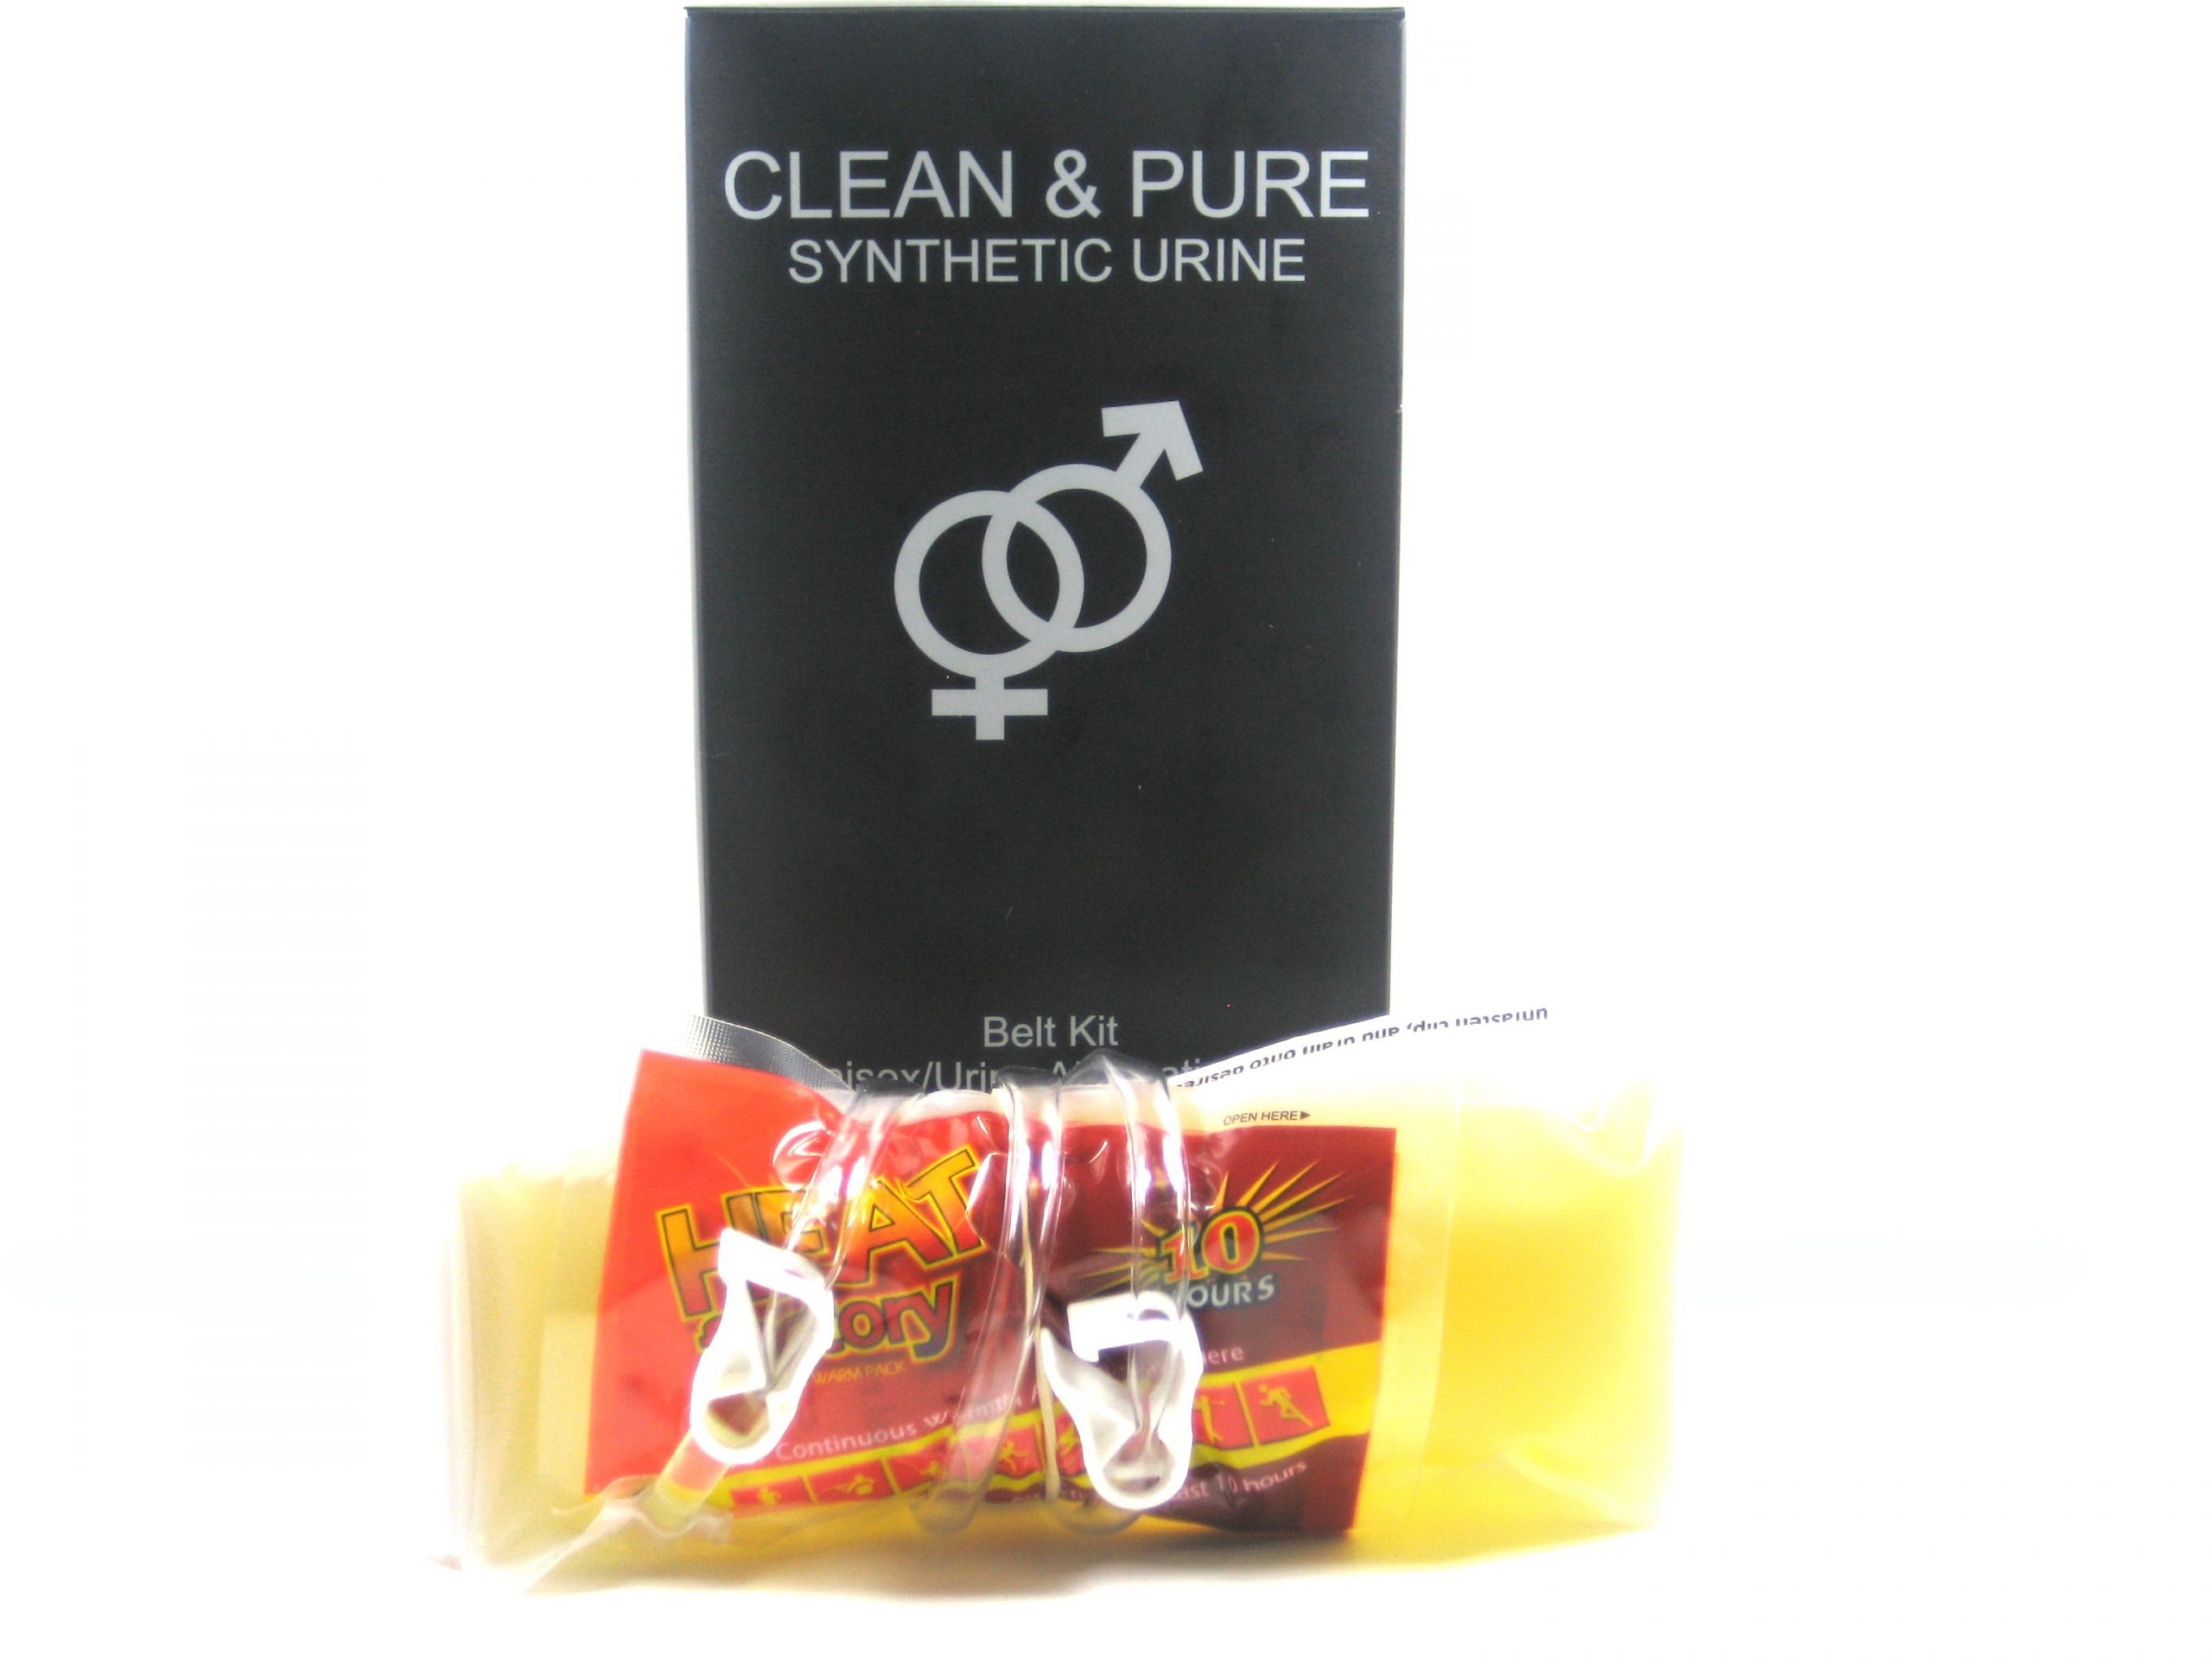 Quick & Clean Synthetic Urine Kit